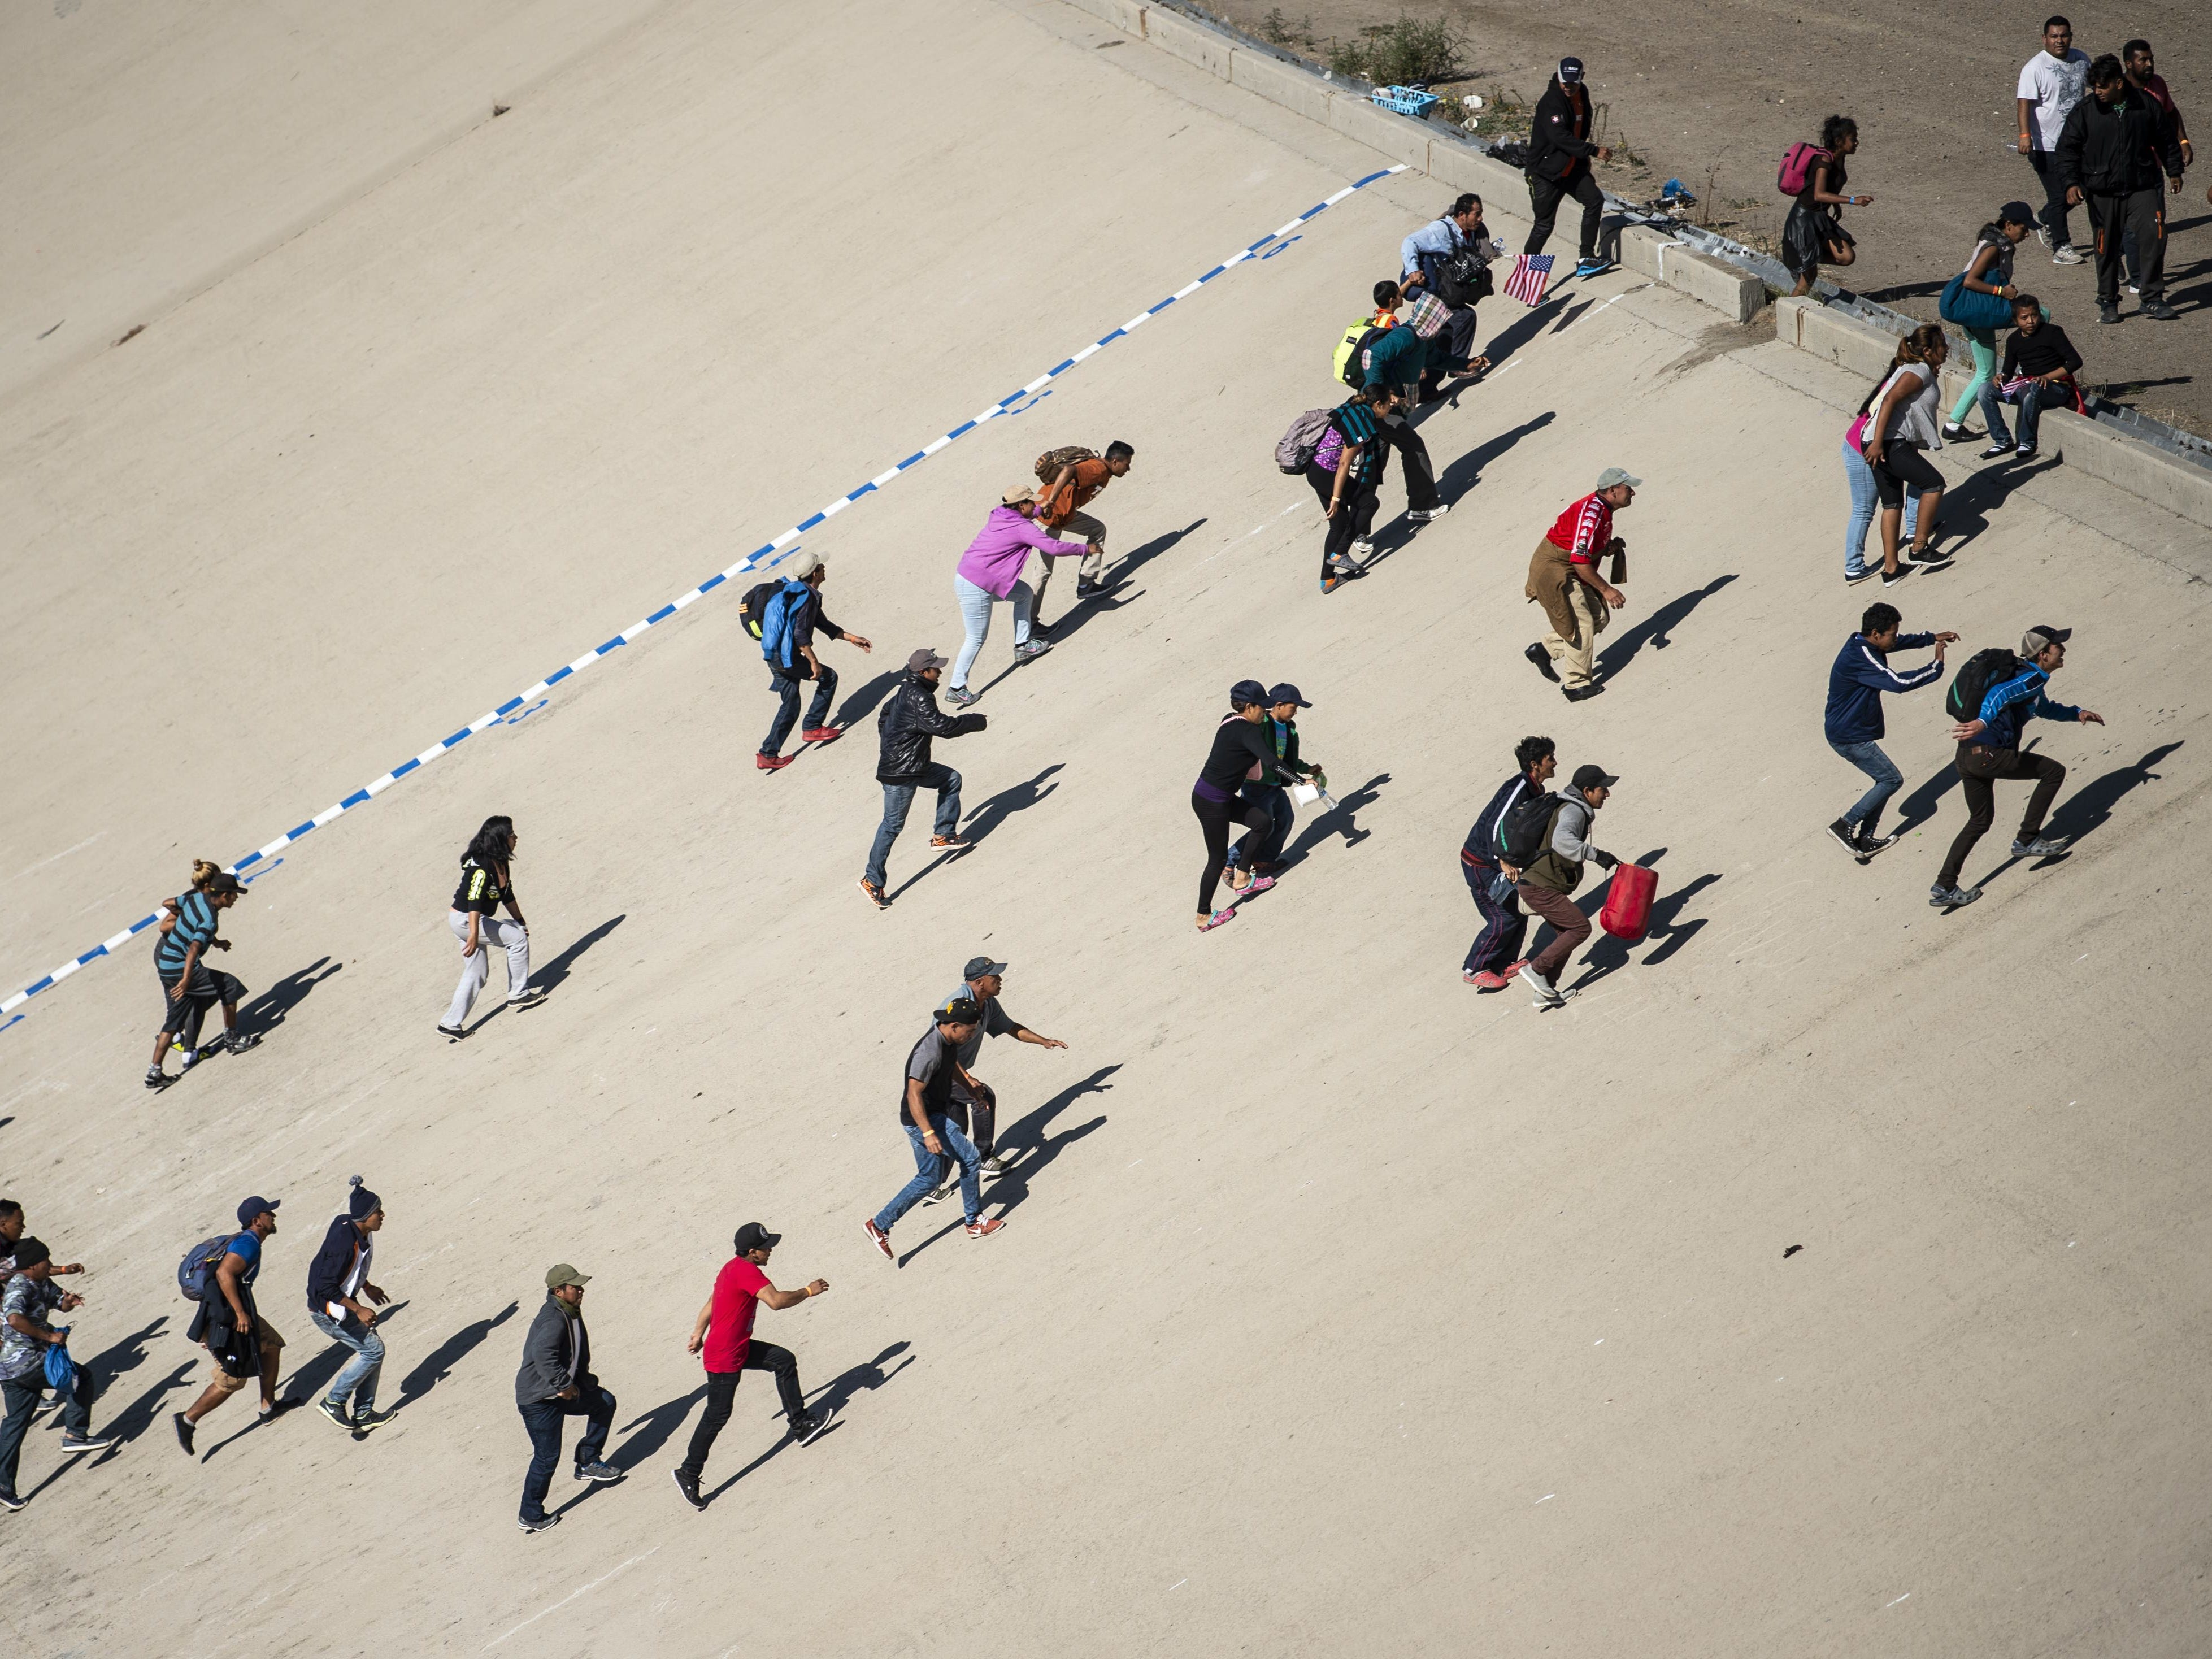 A group of Central American migrants cross the almost dry riverbed of the Tijuana River in an attempt to get to El Chaparral port of entry, in Tijuana, Baja California State, Mexico, near US-Mexico border on Nov. 25, 2018. .